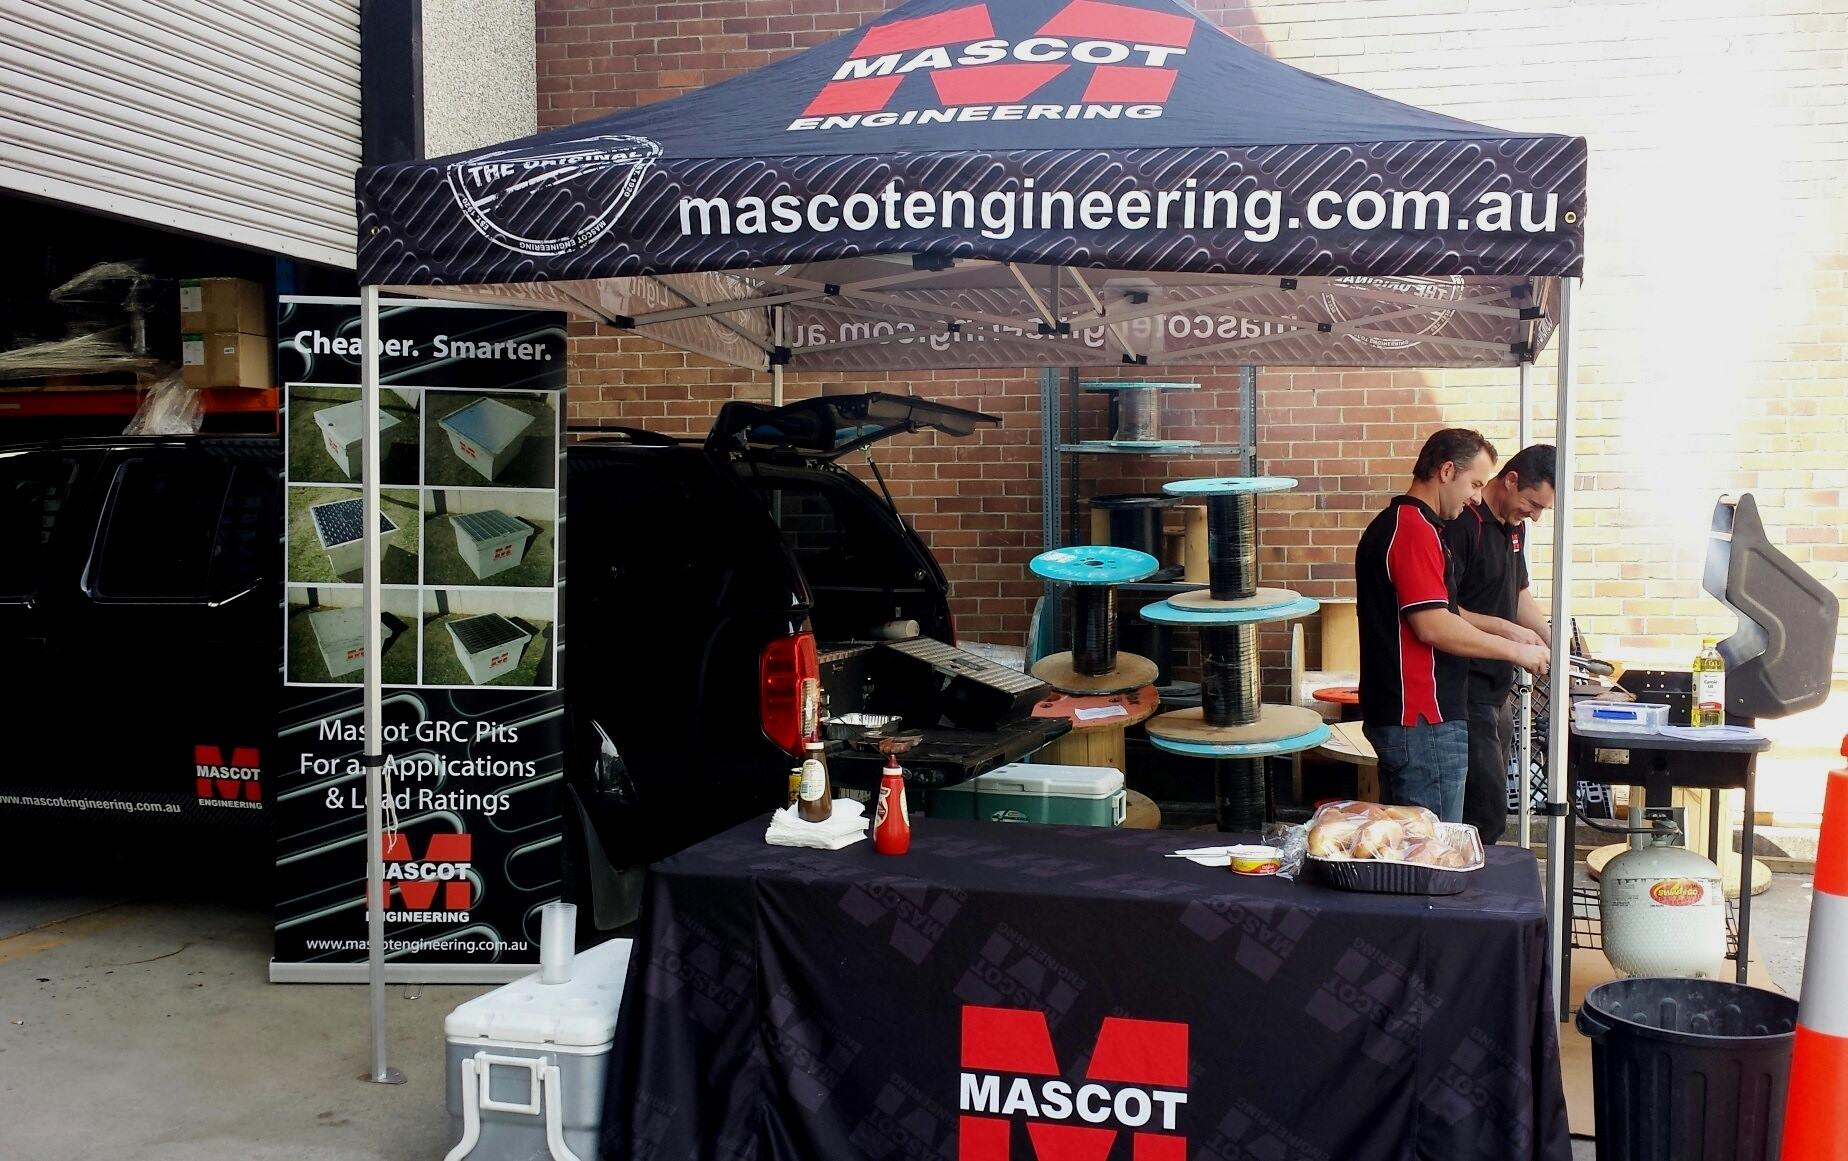 Mascot Engineering BBQ breakfast